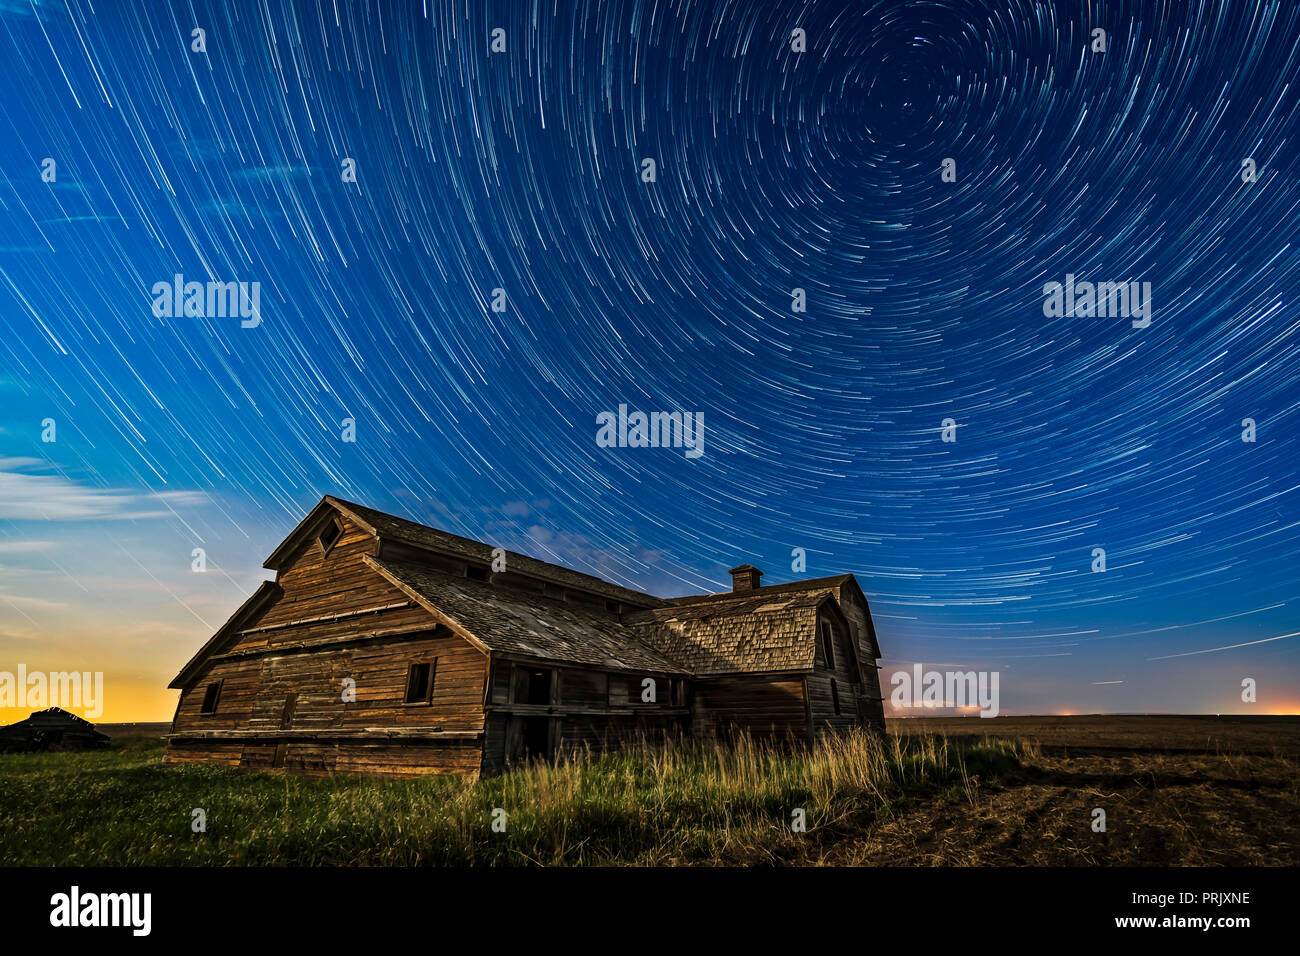 Circumpolar star trails over a grand old barn in southern Alberta, on a fine spring night, May 23, 2018. Illumination is from the waxing gibbous Moon  - Stock Image